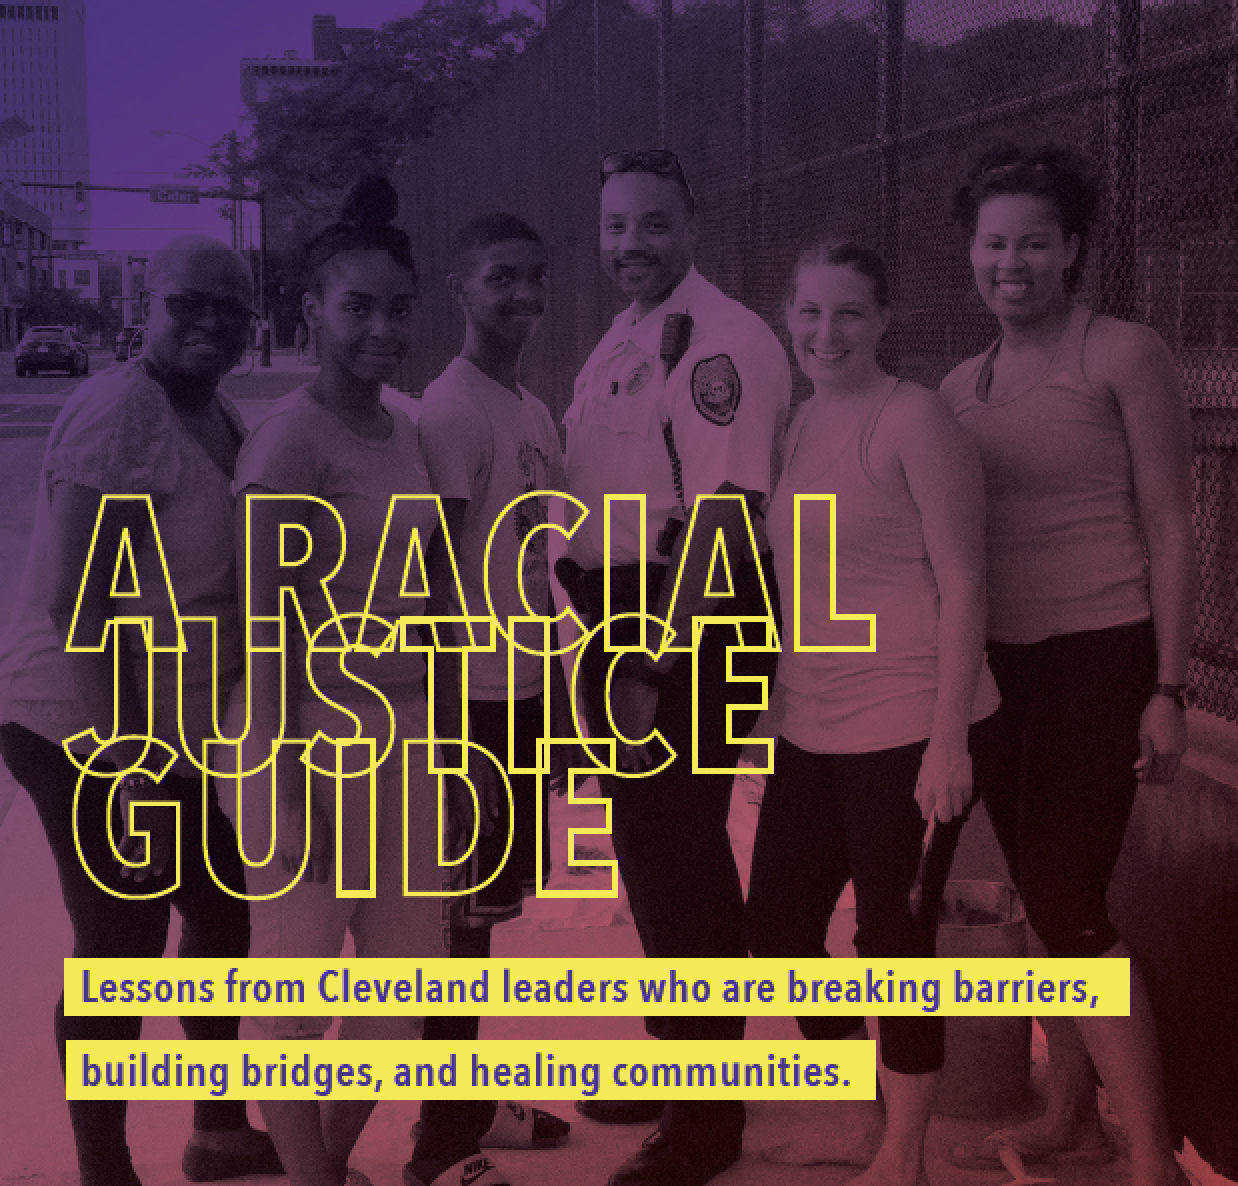 A Racial Justice Guide